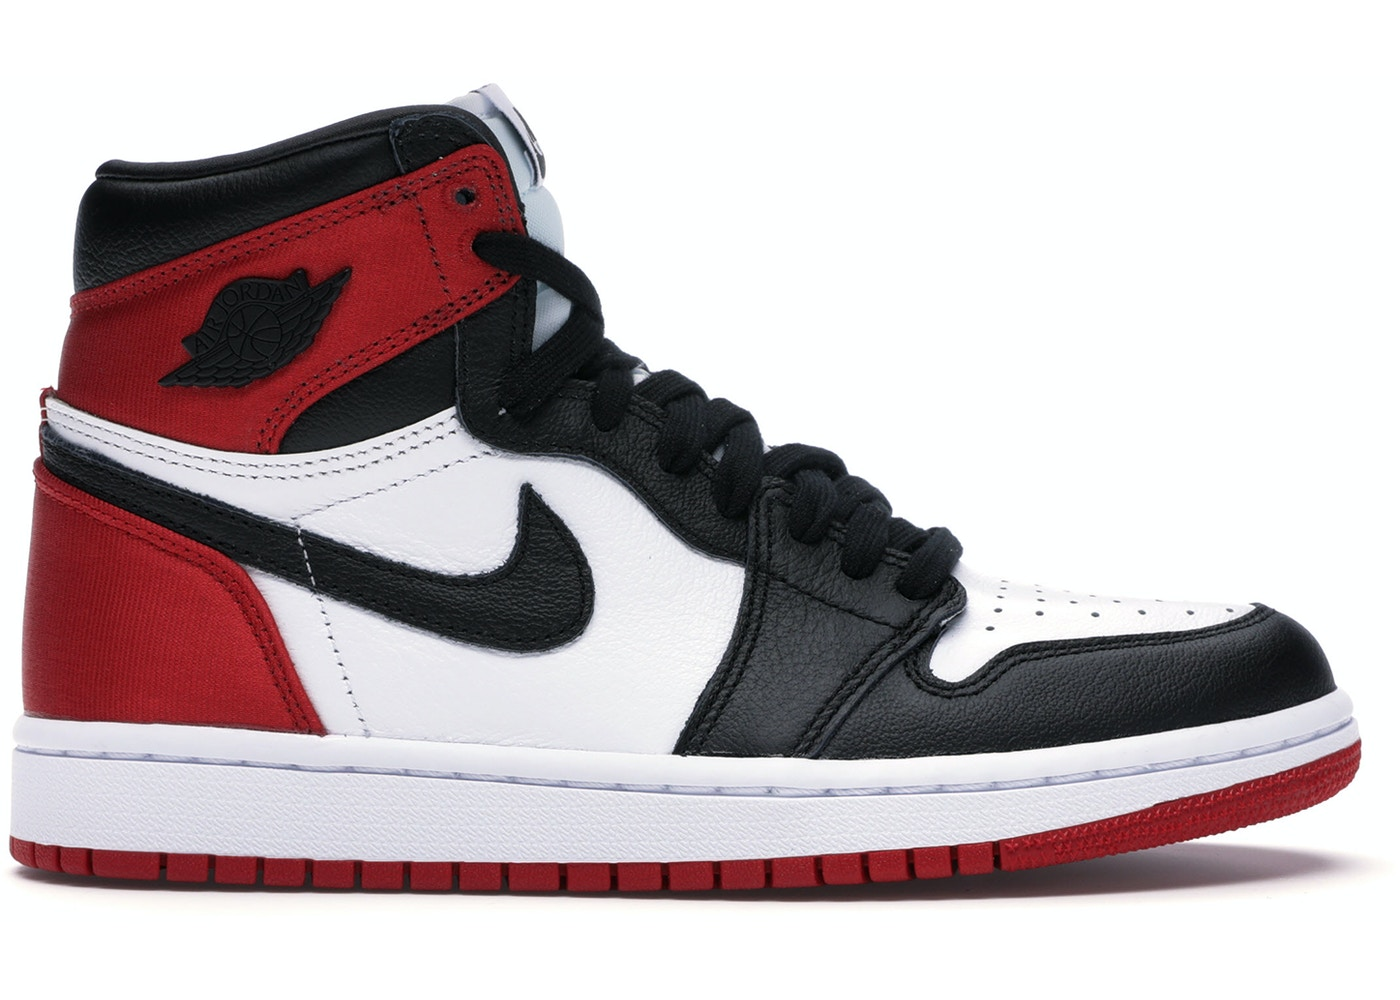 buy online 84748 b1e13 Jordan 1 Retro High Satin Black Toe (W)